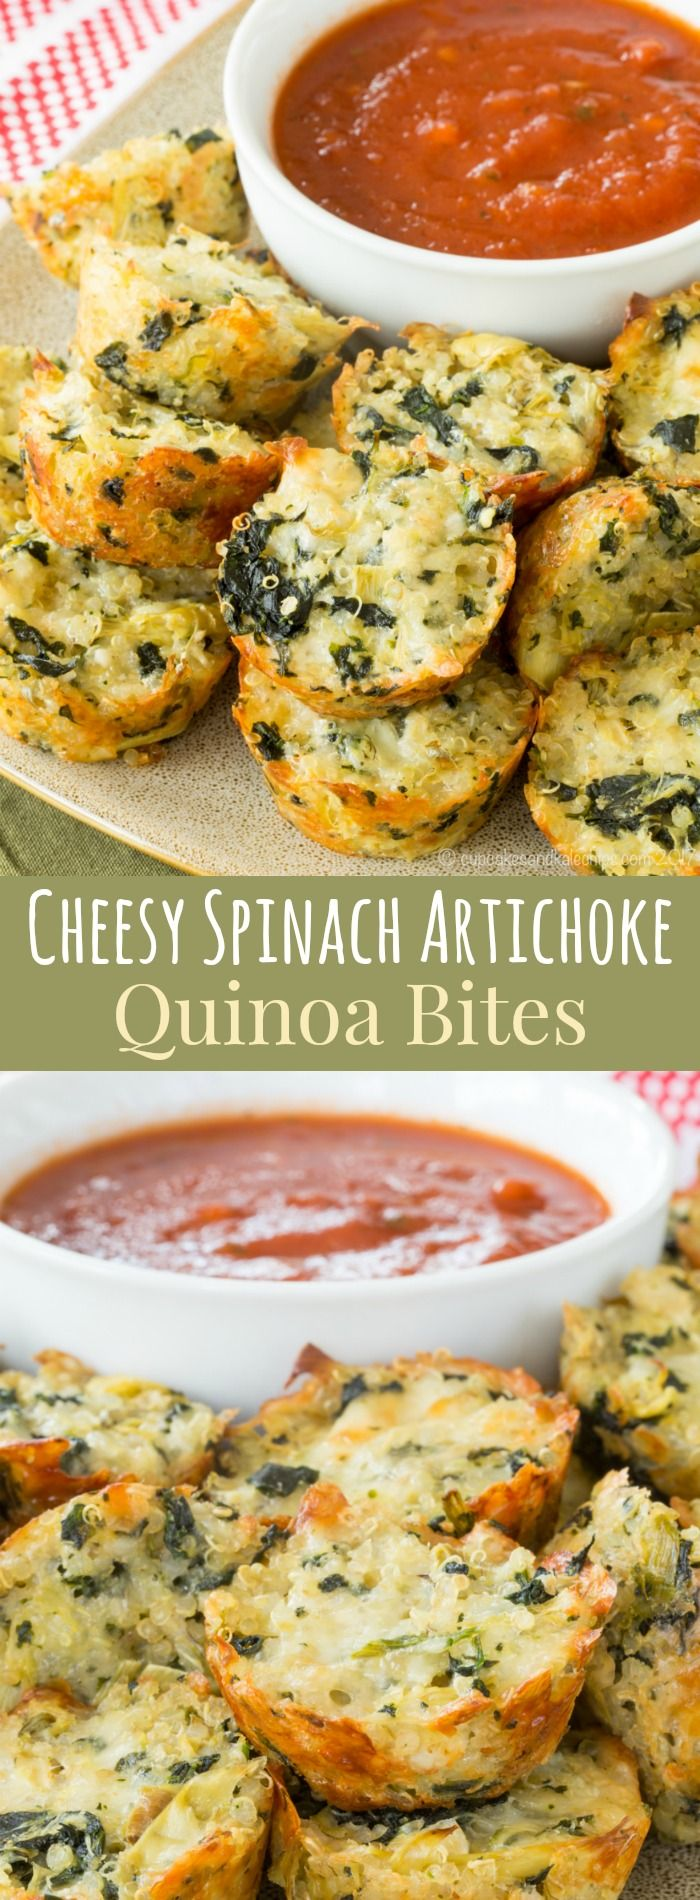 Cheesy Spinach Artichoke Quinoa Bites - an easy, healthy appetizer or snack recipe with three kinds of cheese!